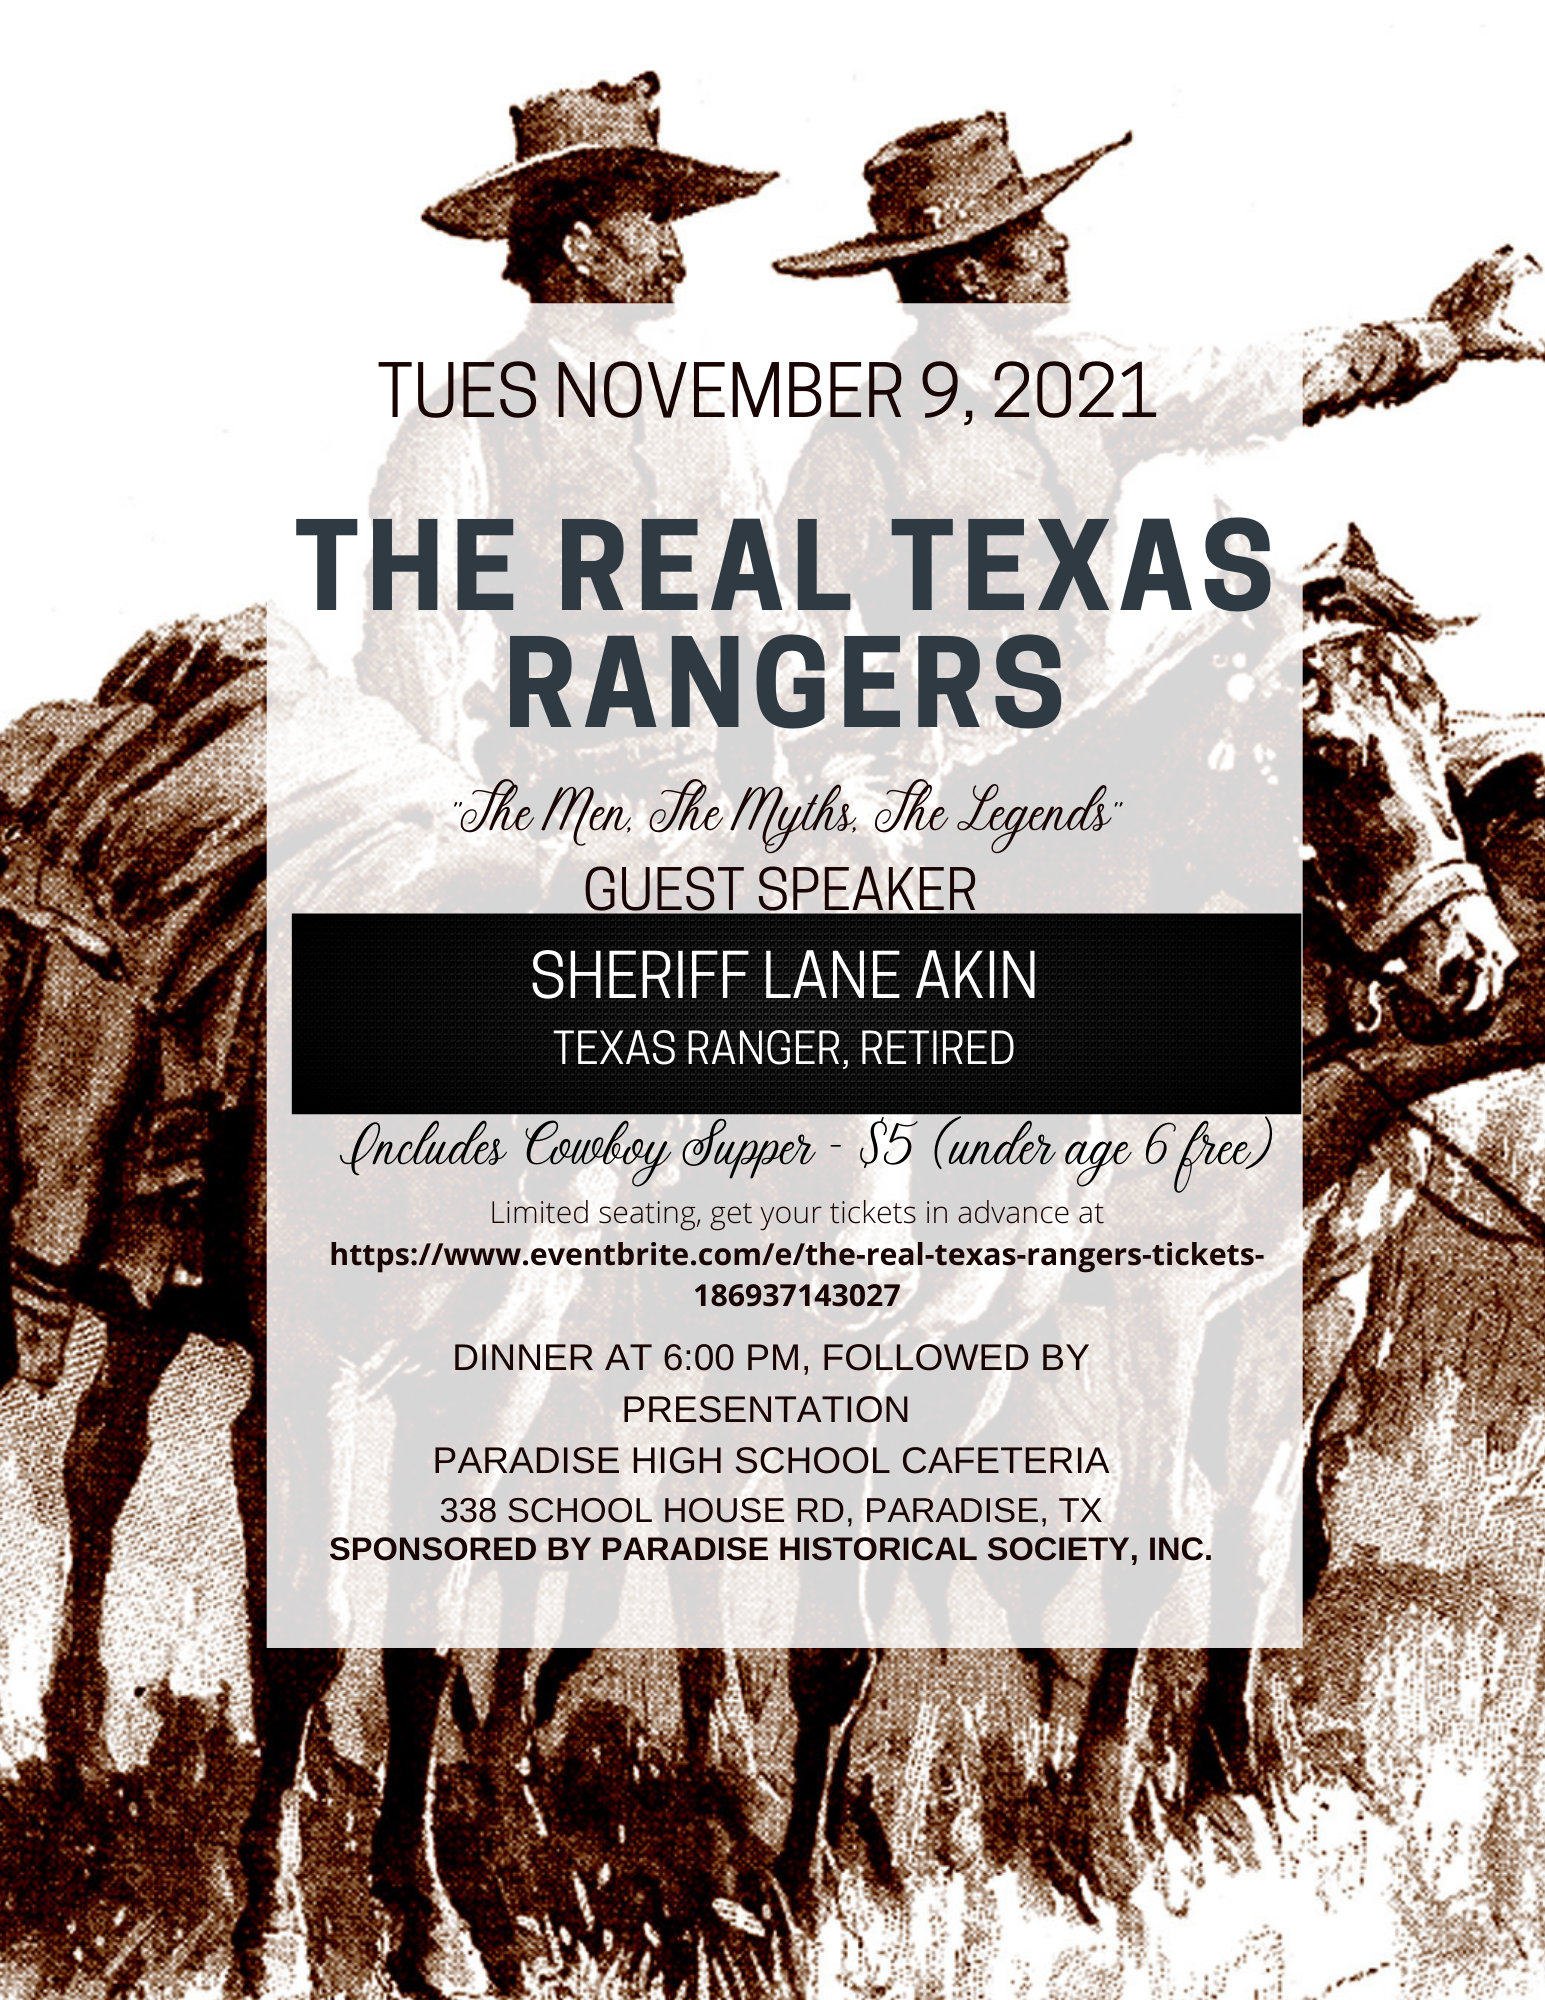 The Real Texas Rangers